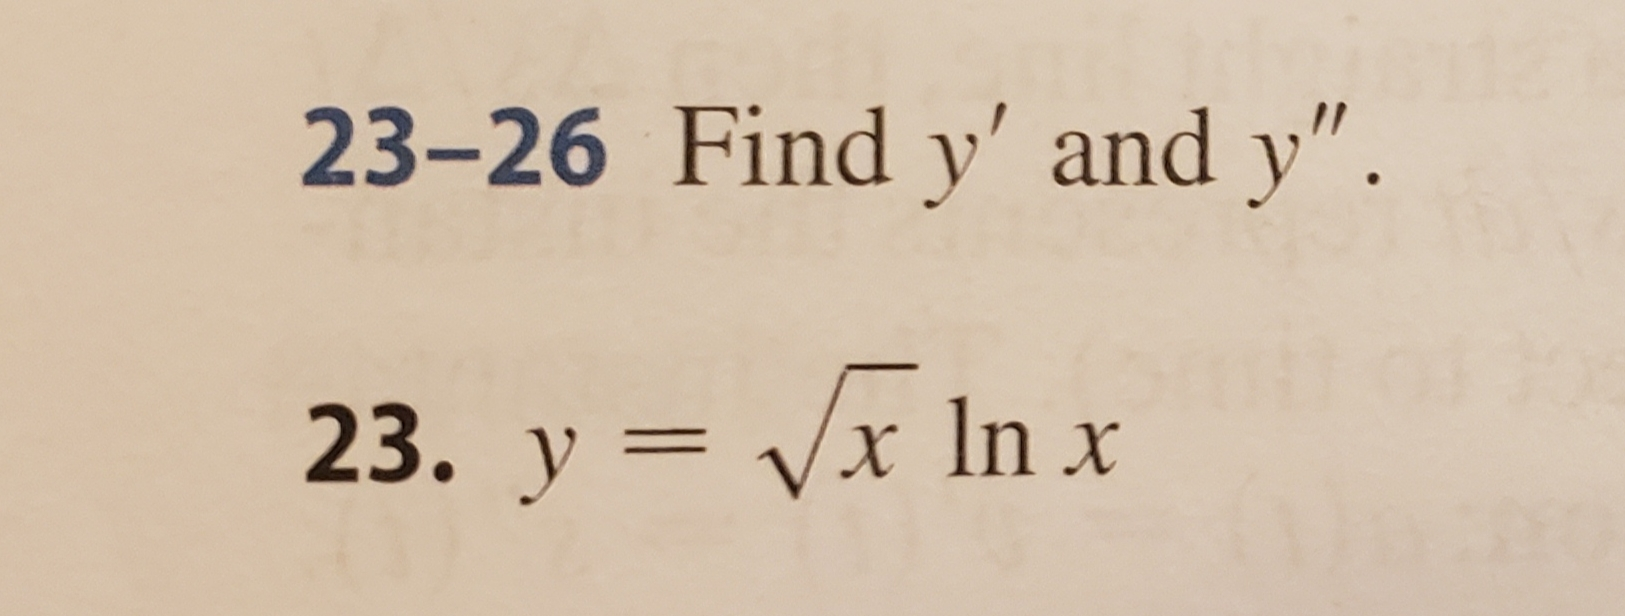 "23-26 Find y' and y"". 23. y x In x ="